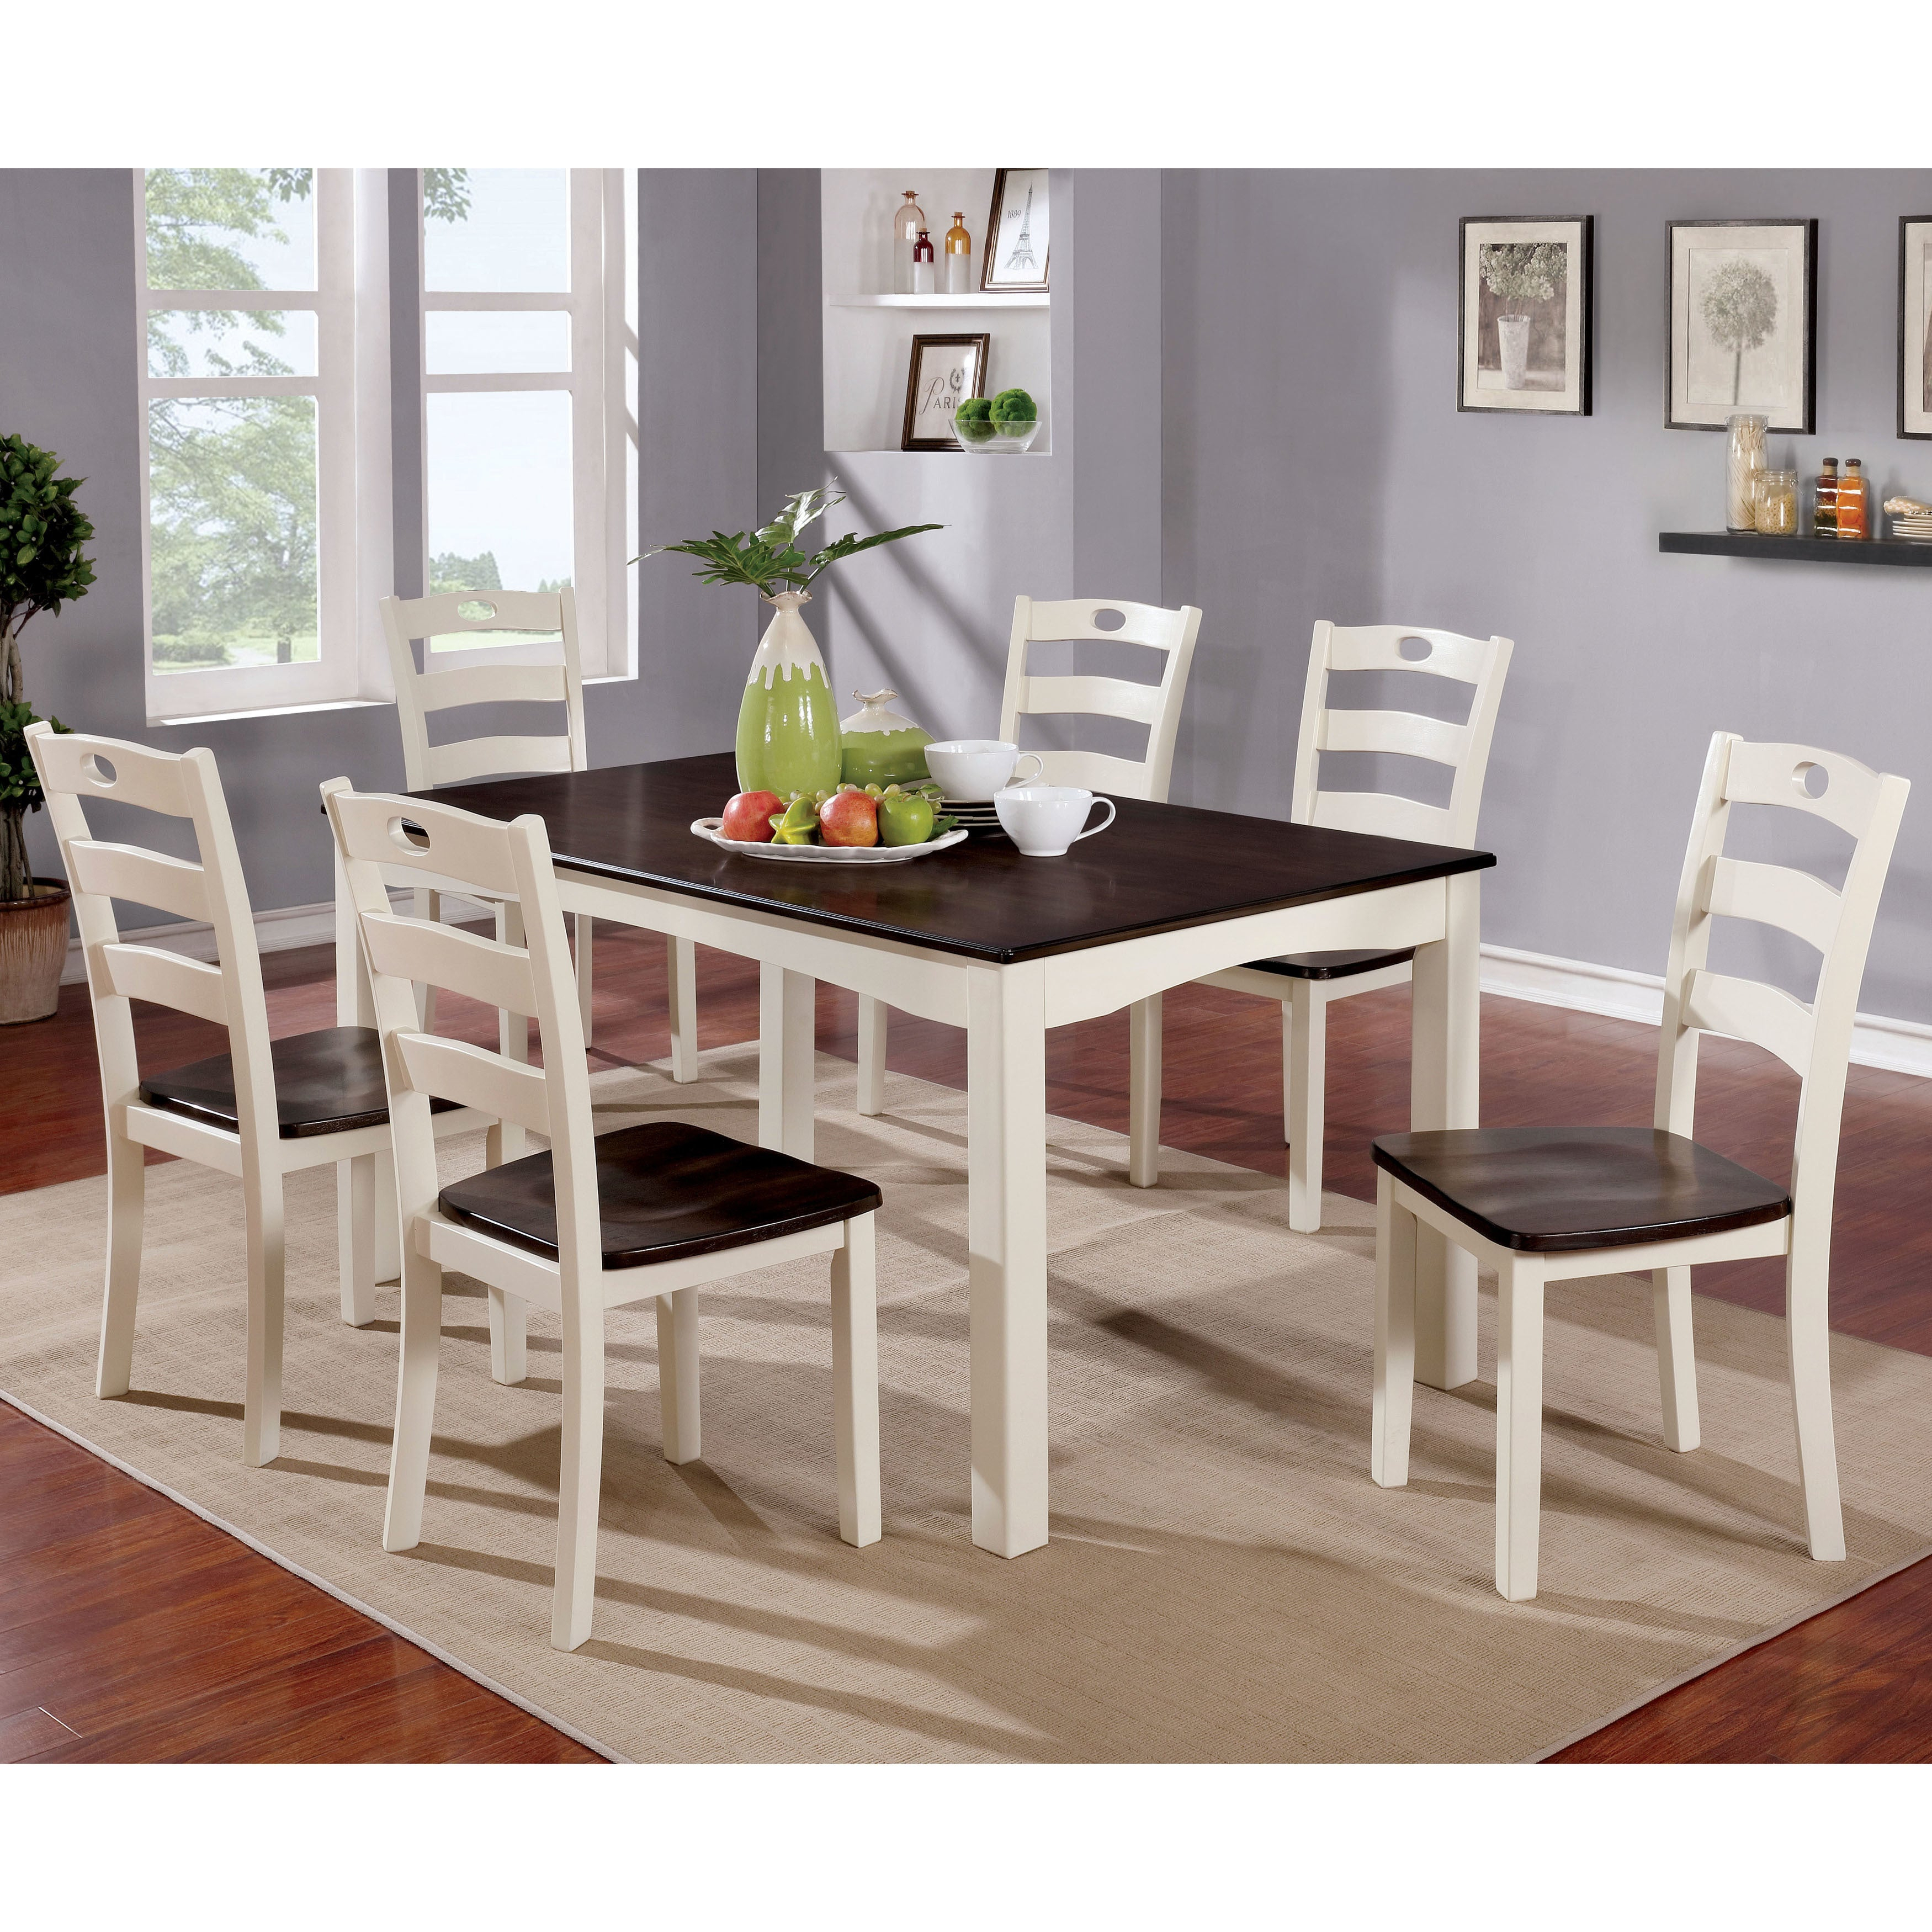 Aria 5 Piece Dining Sets Throughout Preferred Buy Kitchen & Dining Room Sets Sale Ends In 2 Days Online At (View 11 of 20)